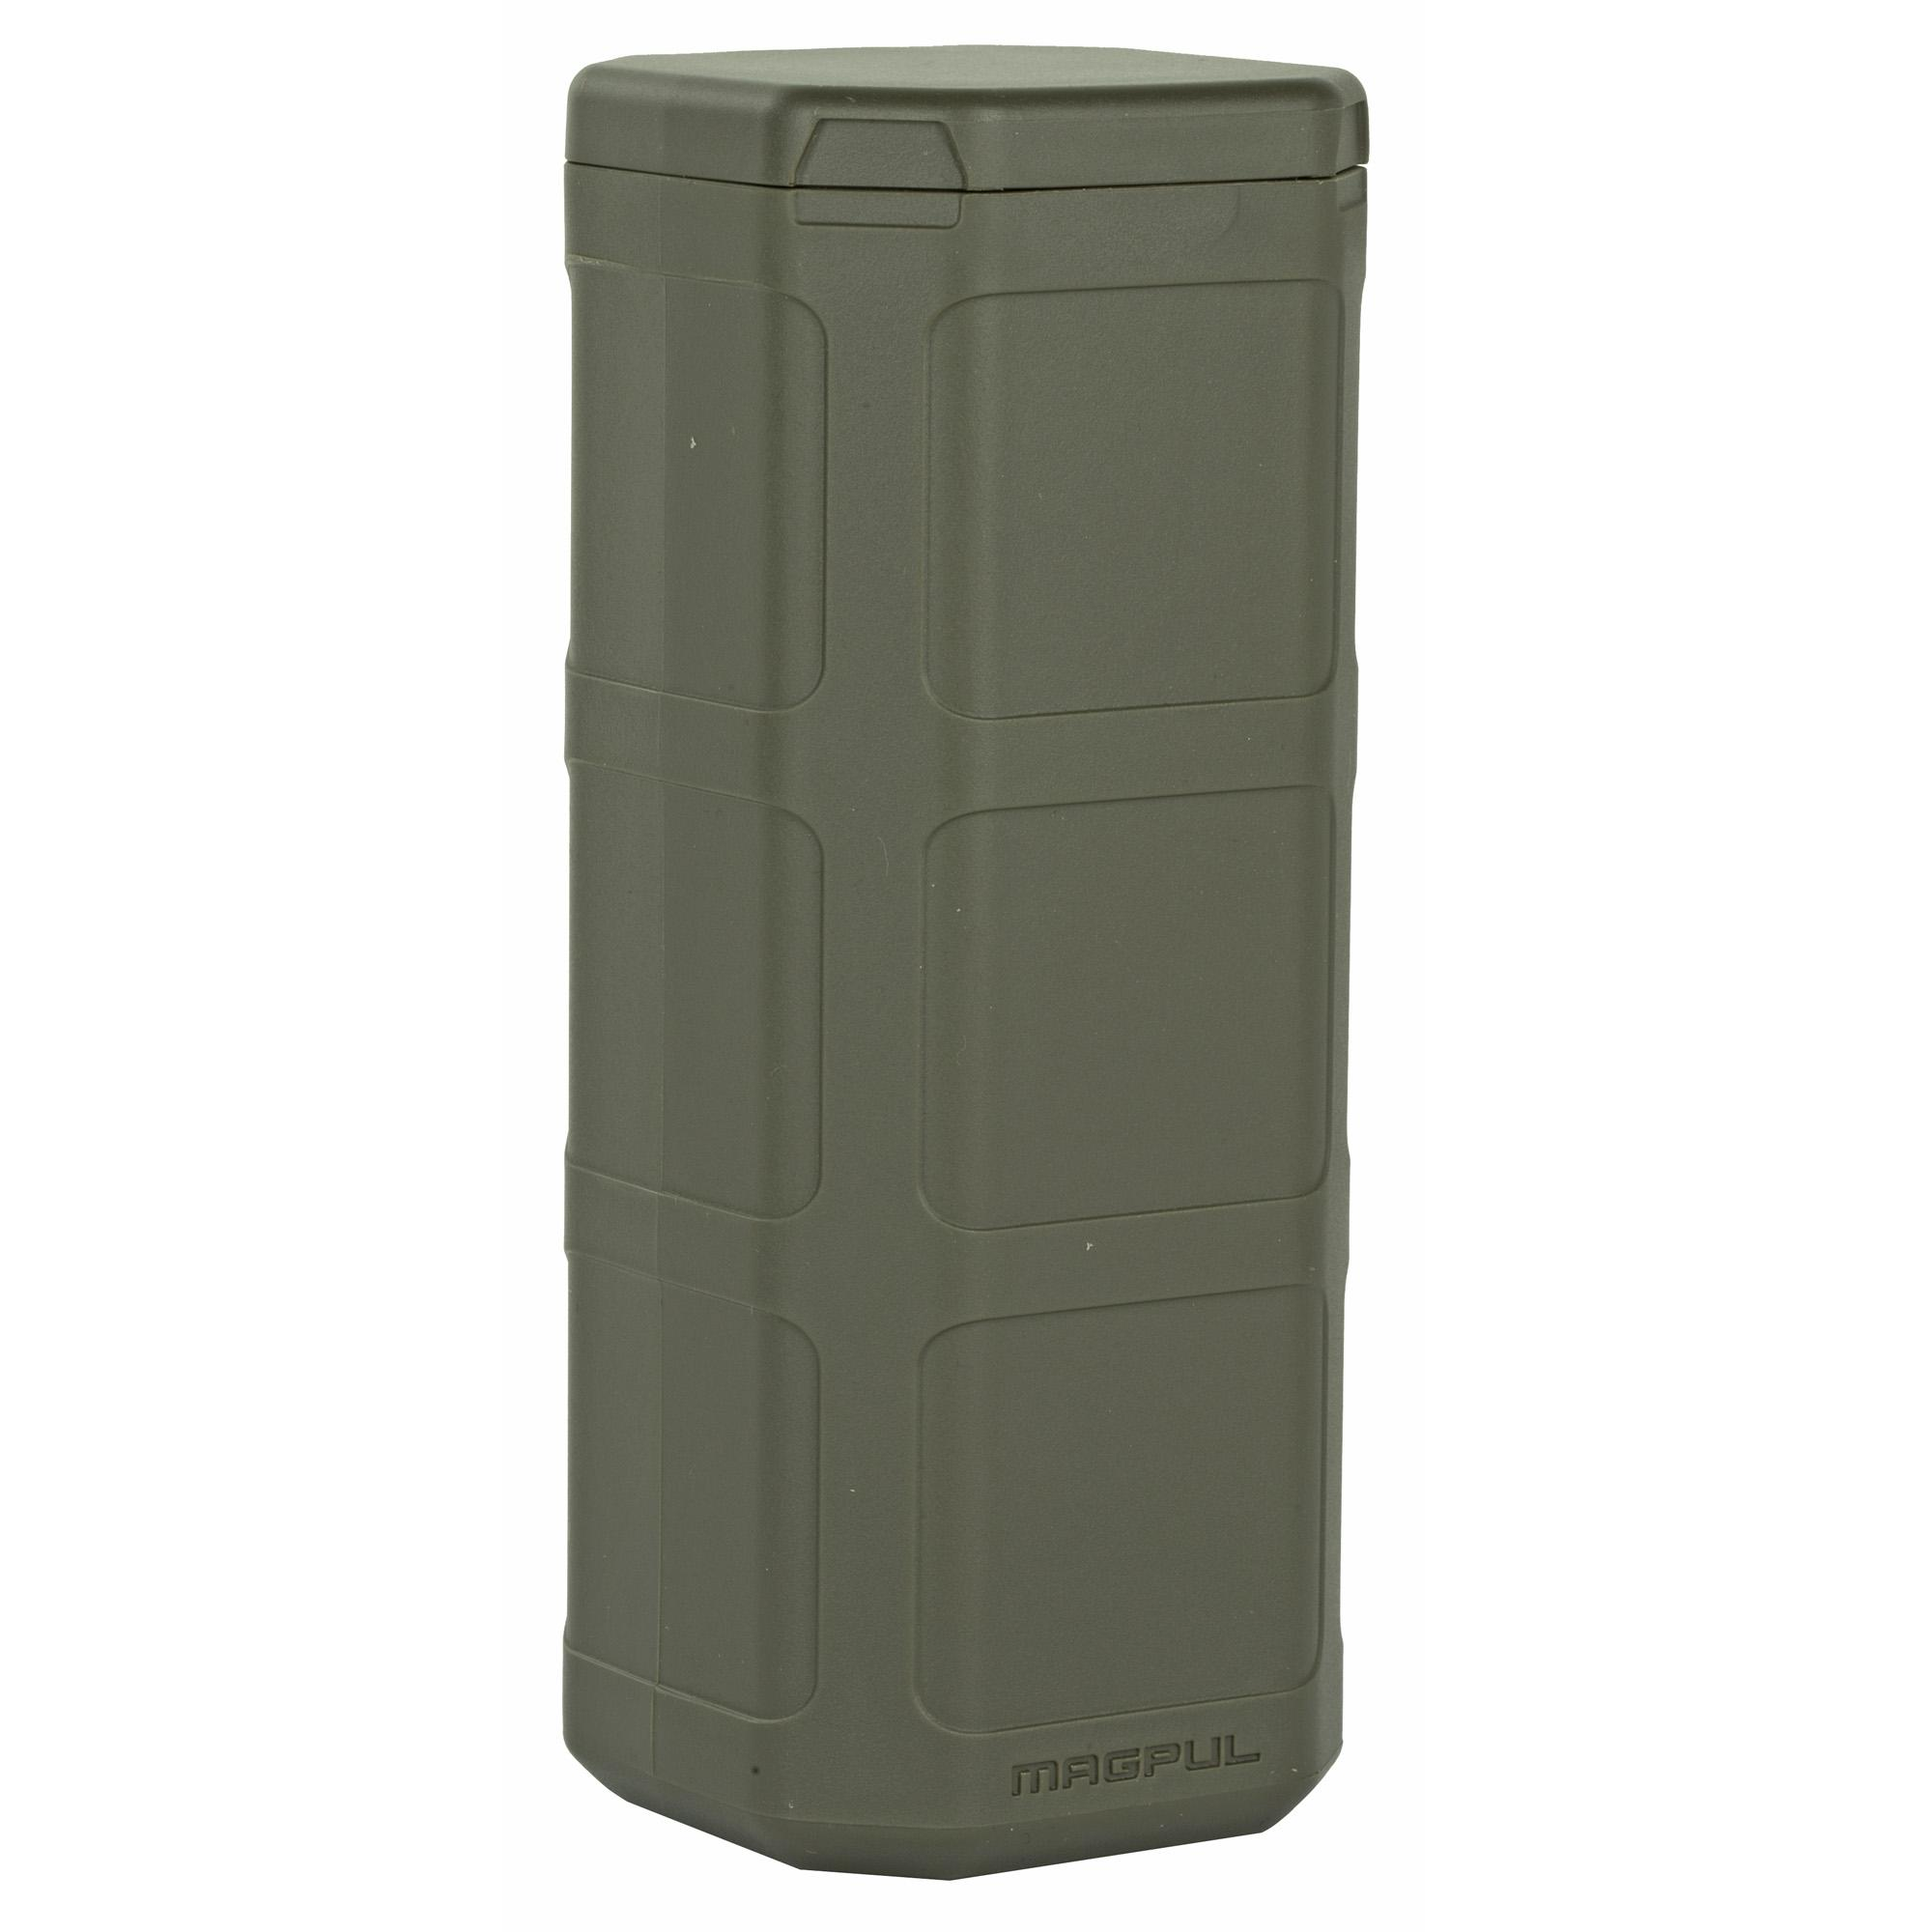 Magpul Industries Magpul Daka Can Olive Drab